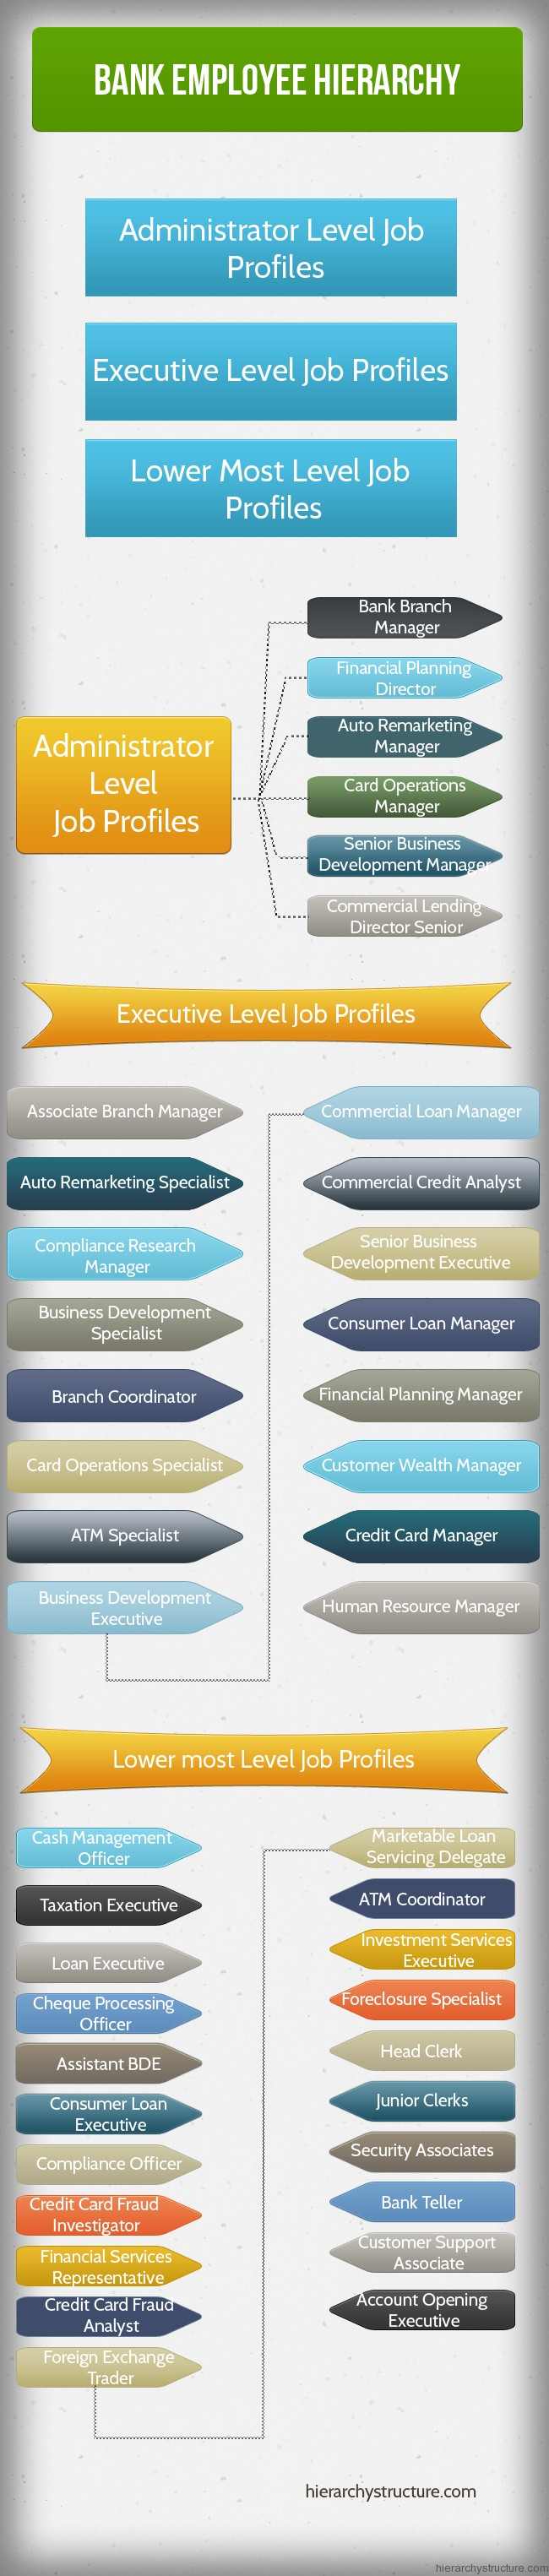 bank of america employee banking & investments website